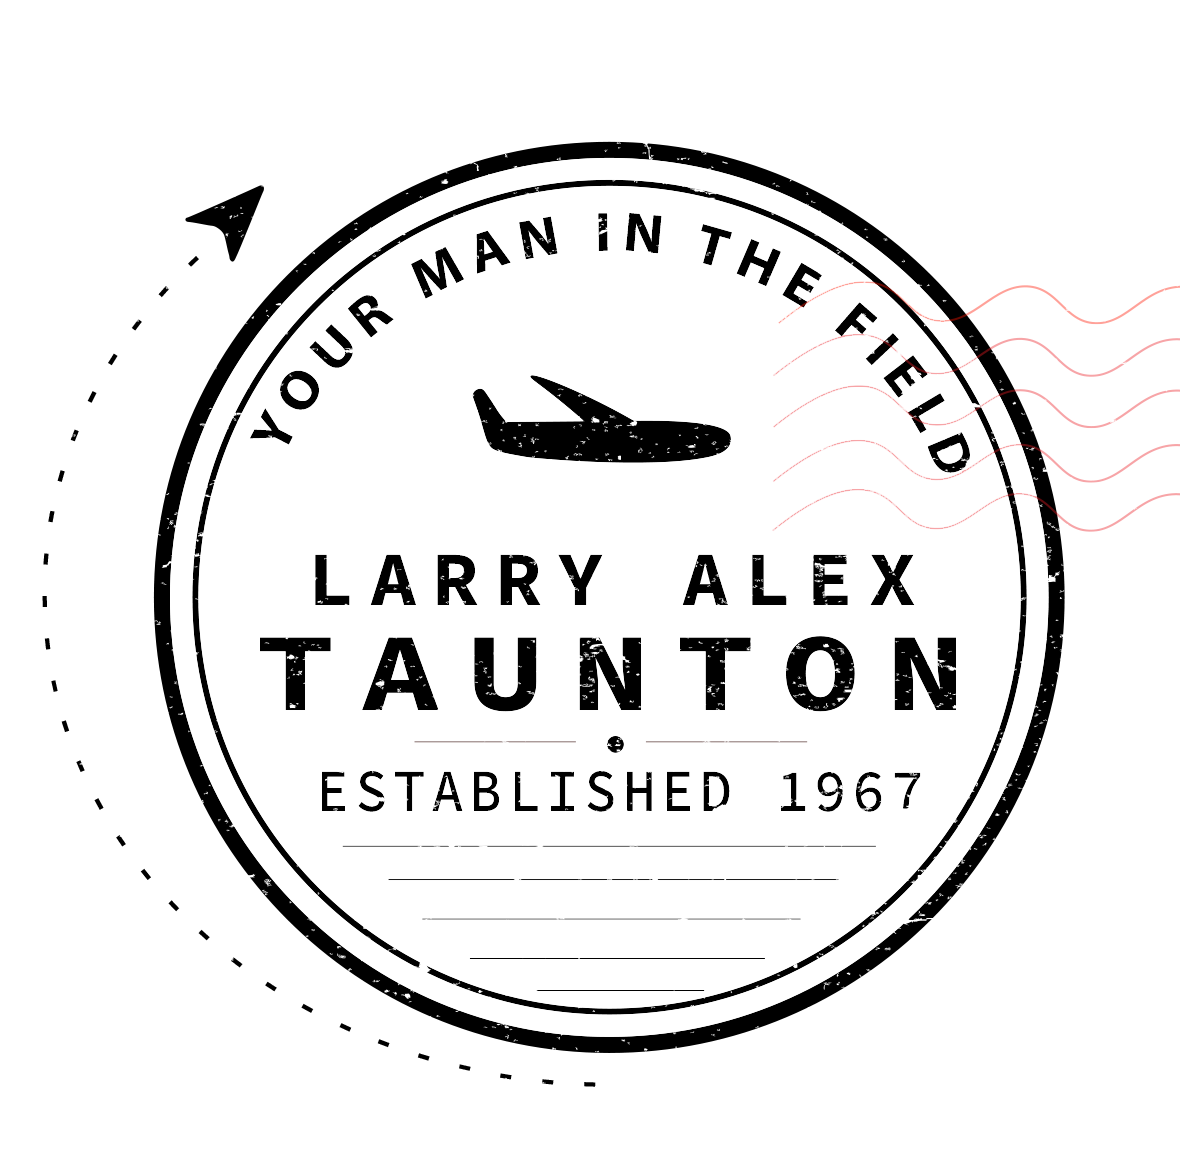 Larry Alex Taunton